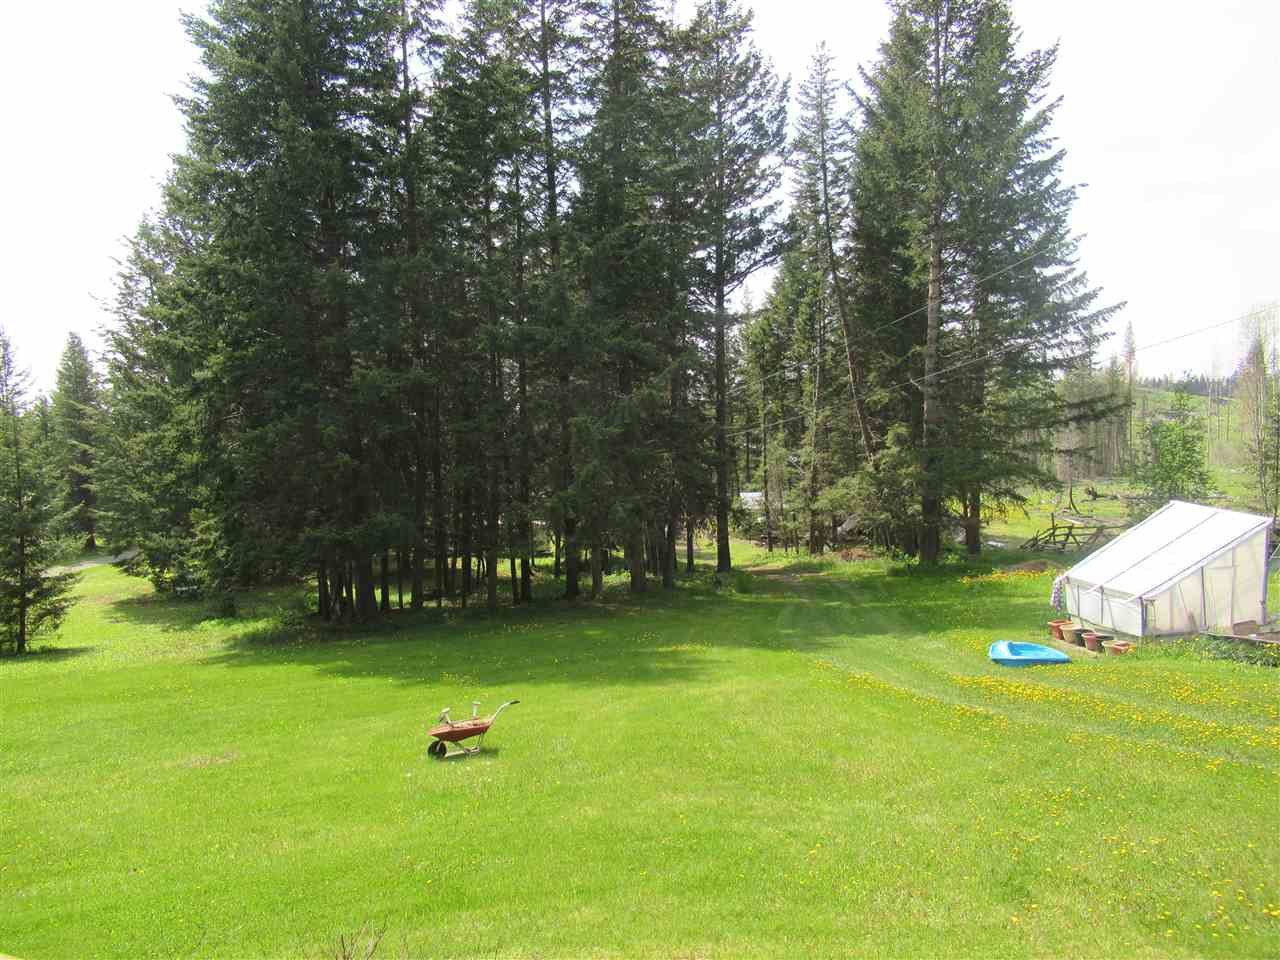 Photo 16: Photos: 1224 DESAUTEL Road in Williams Lake: Williams Lake - Rural East Manufactured Home for sale (Williams Lake (Zone 27))  : MLS®# R2376873